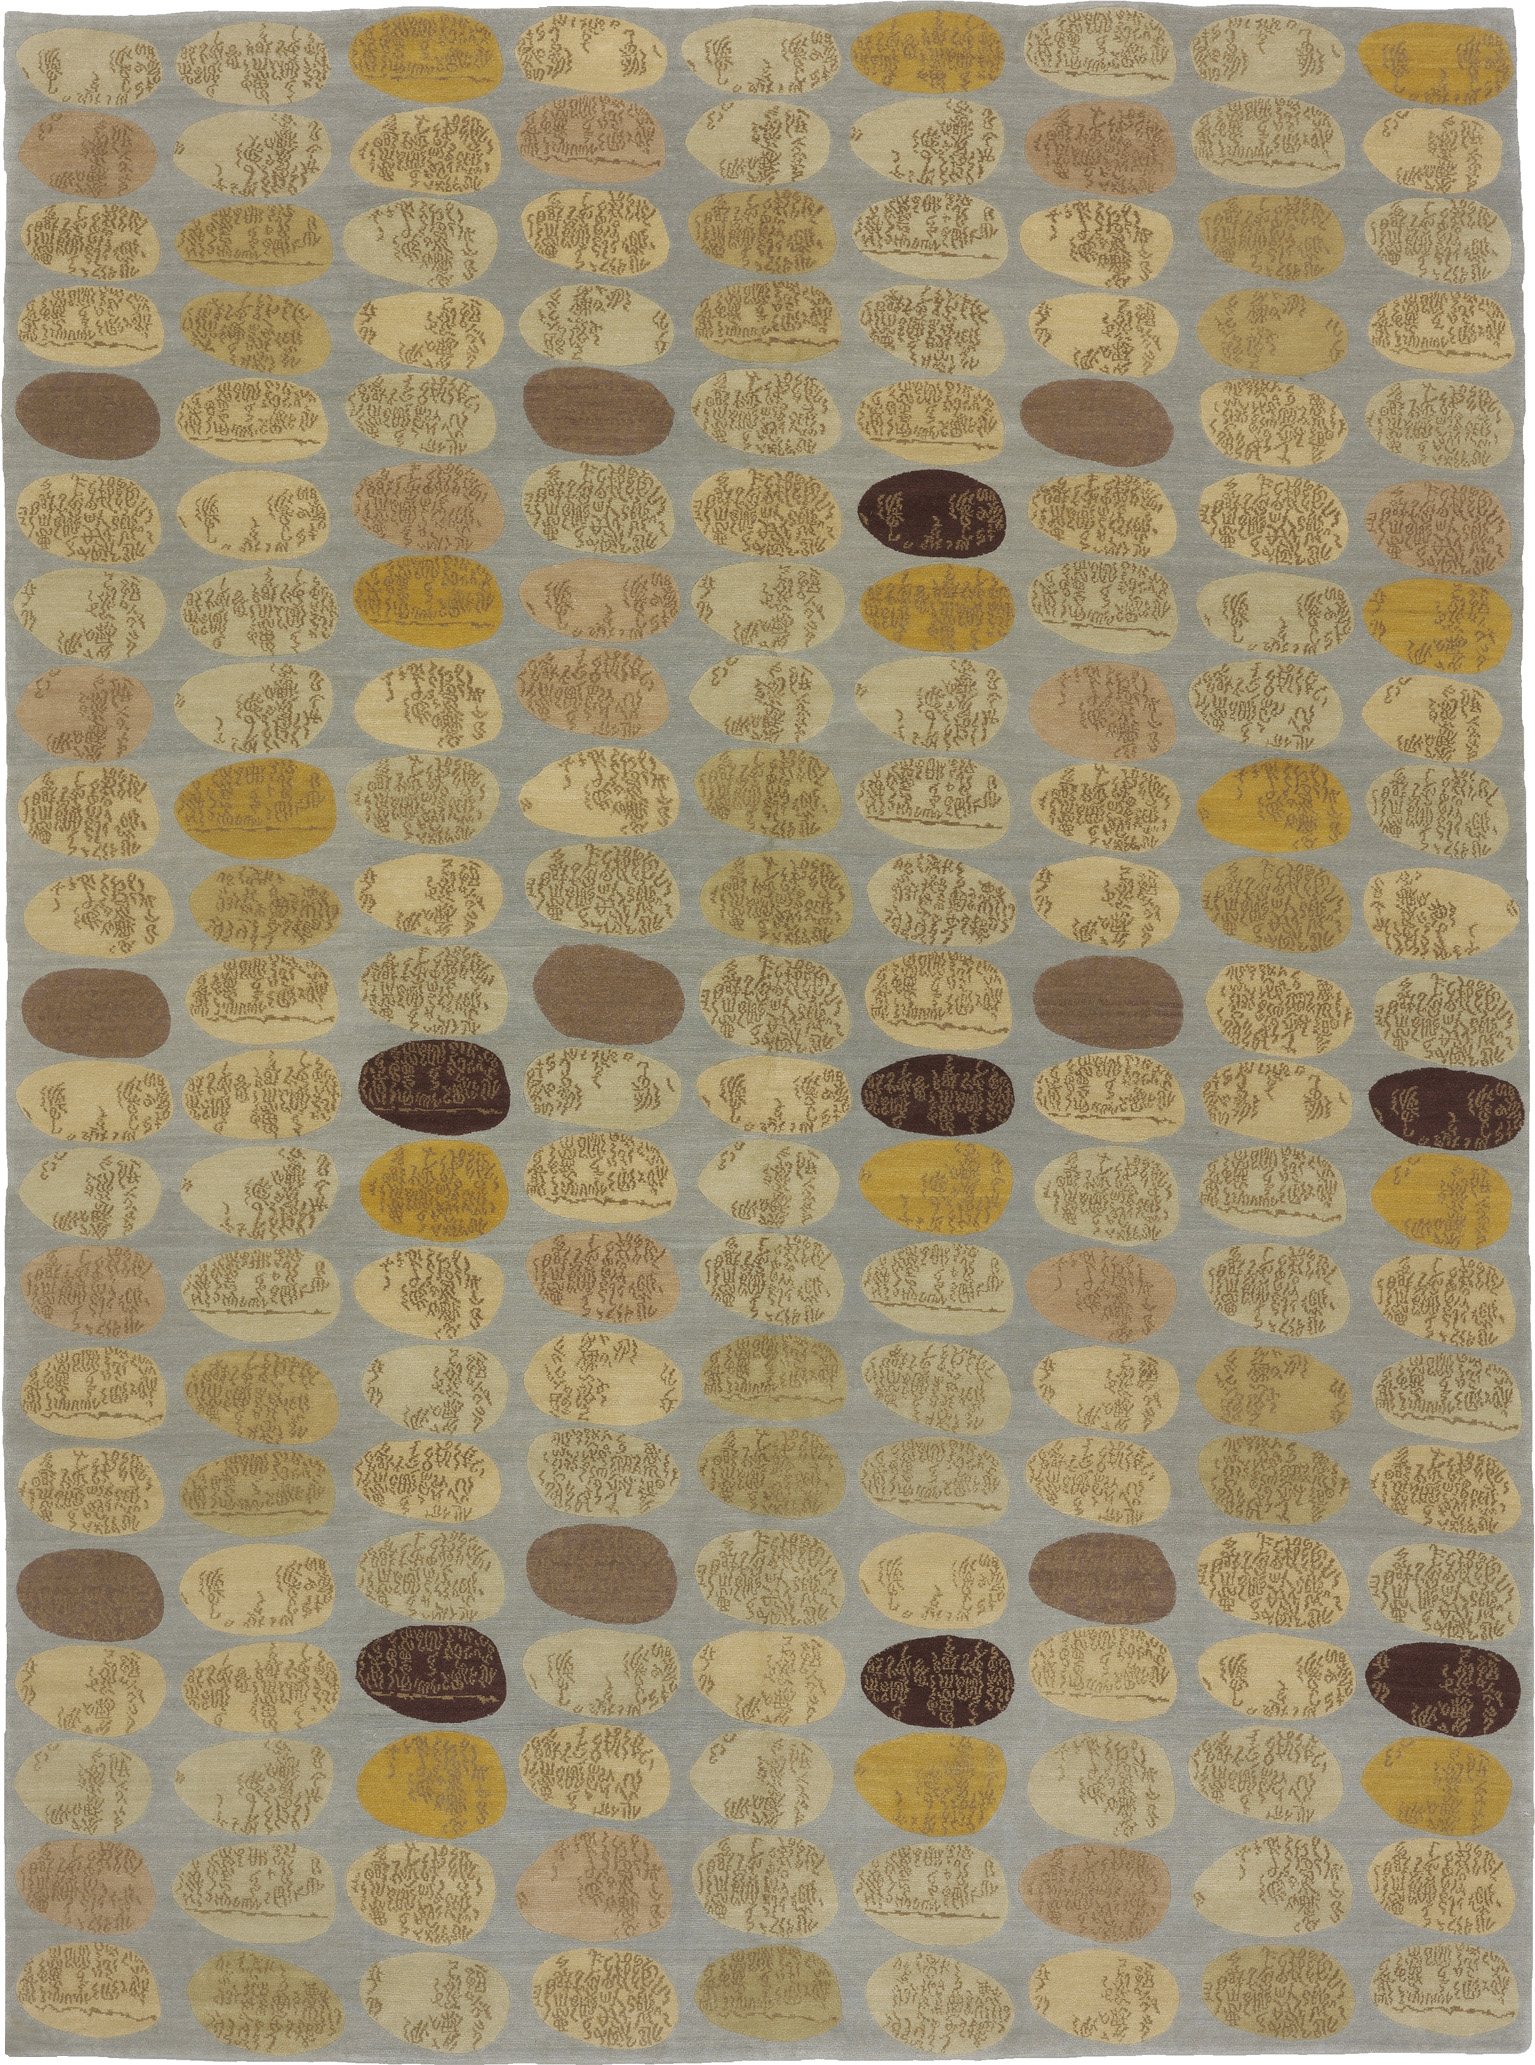 'Story Stones' from the 'Donghia for Odegard' Collection by Odegard, circa 2000 C.E. | Image courtesy of Odegard Carpets.